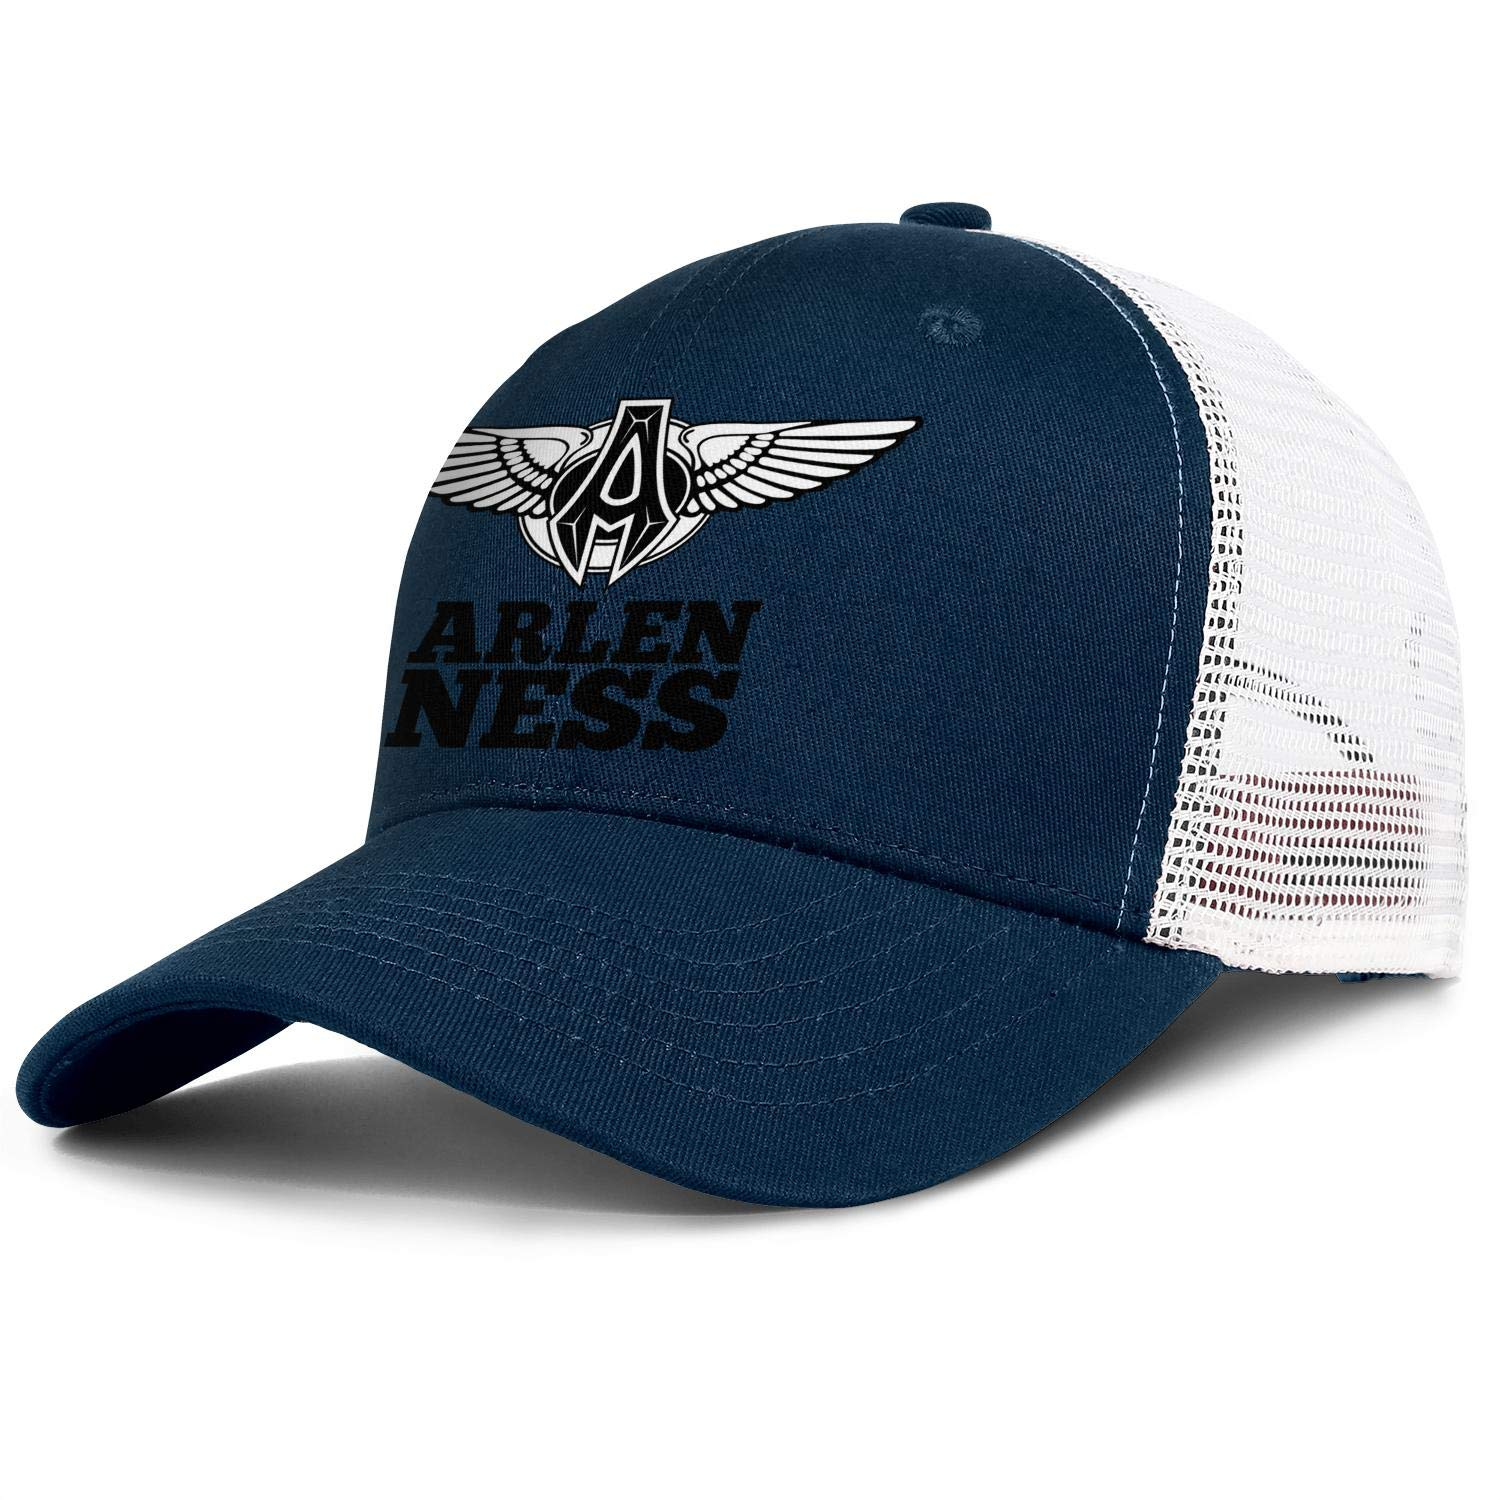 Arlen Ness Mens Womens Mesh Back Running Trucker Caps Classic Sun Hat